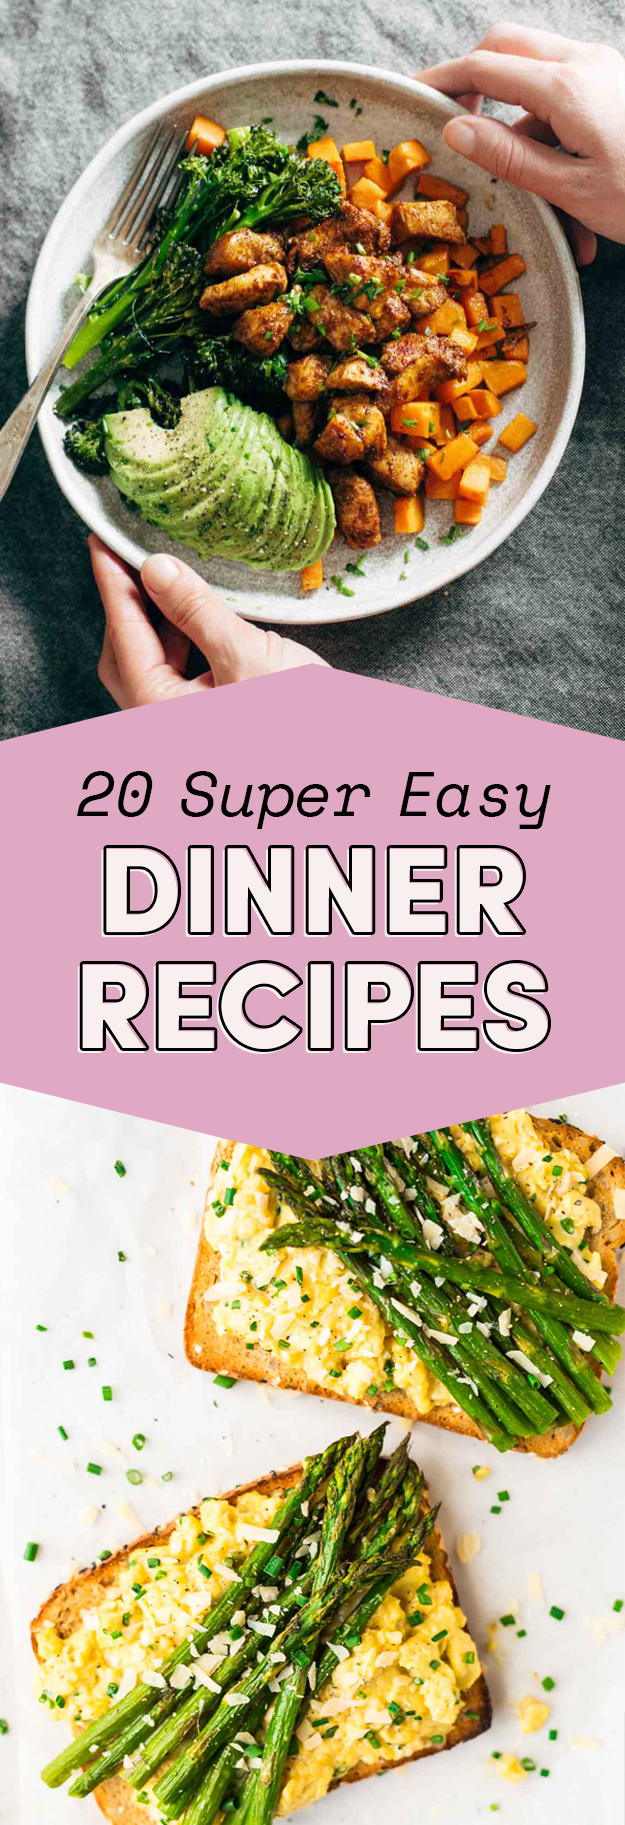 Easy to make dinner recipes healthy